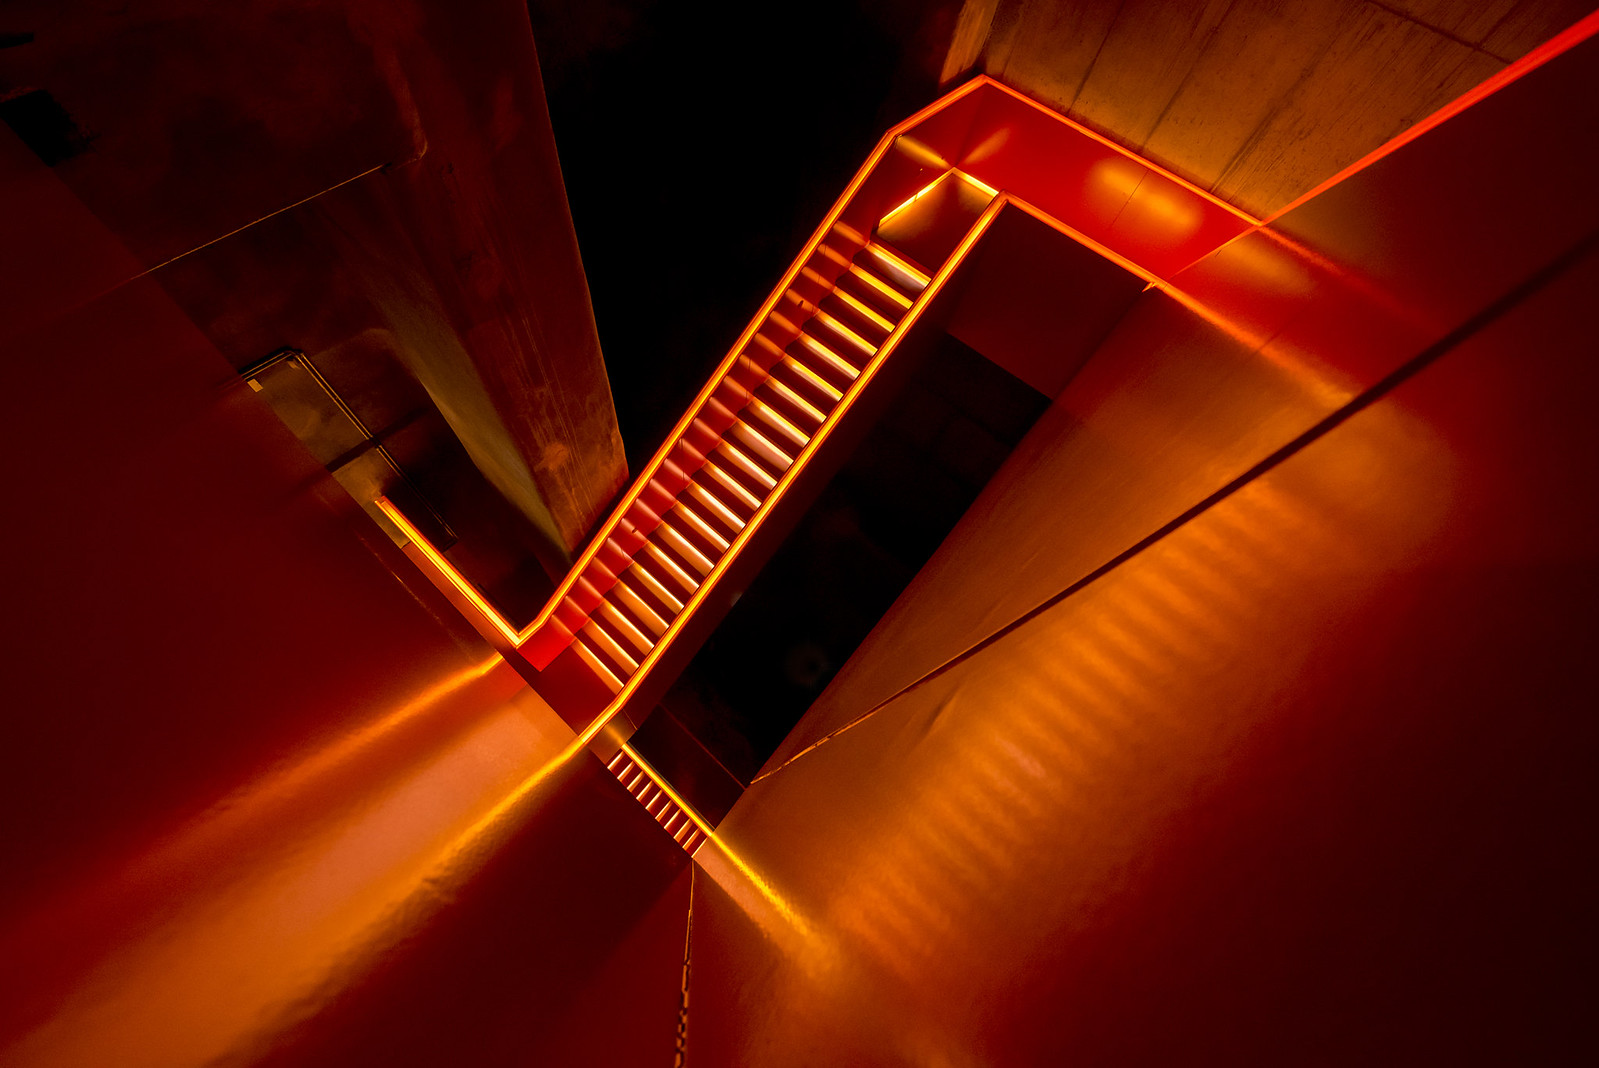 Stairwork orange by Carsten Heyer